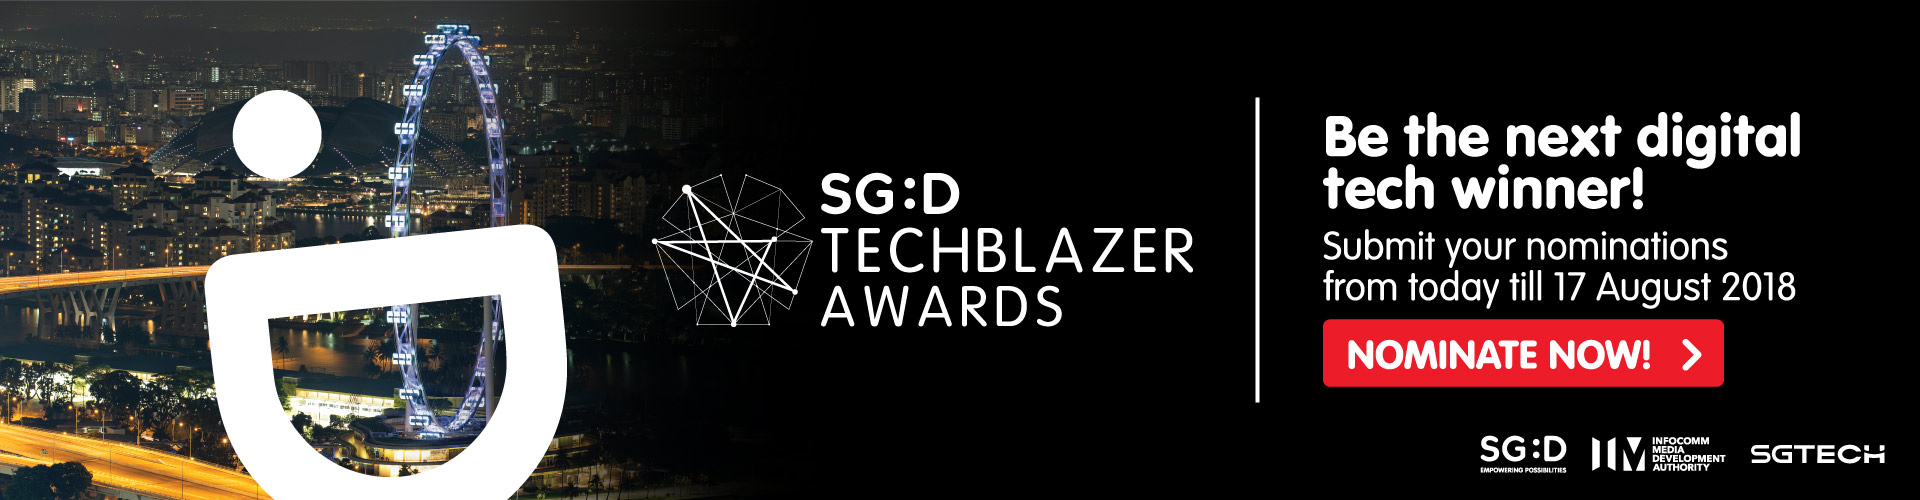 Techblazer awards